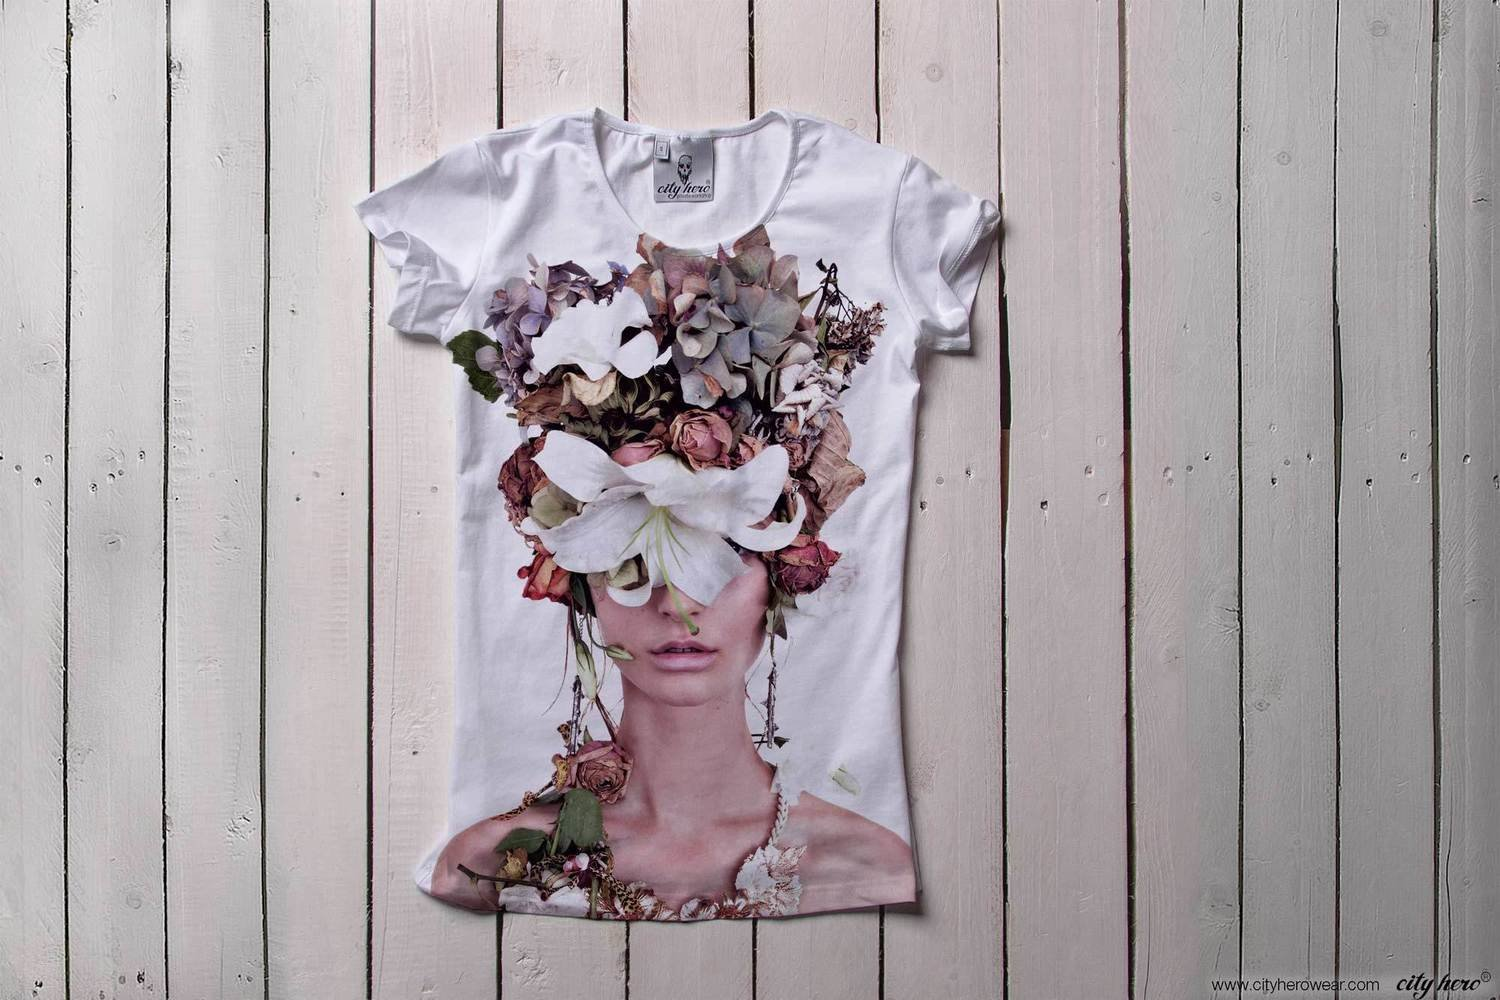 Floral dreams [T-SHIRT WOMEN]